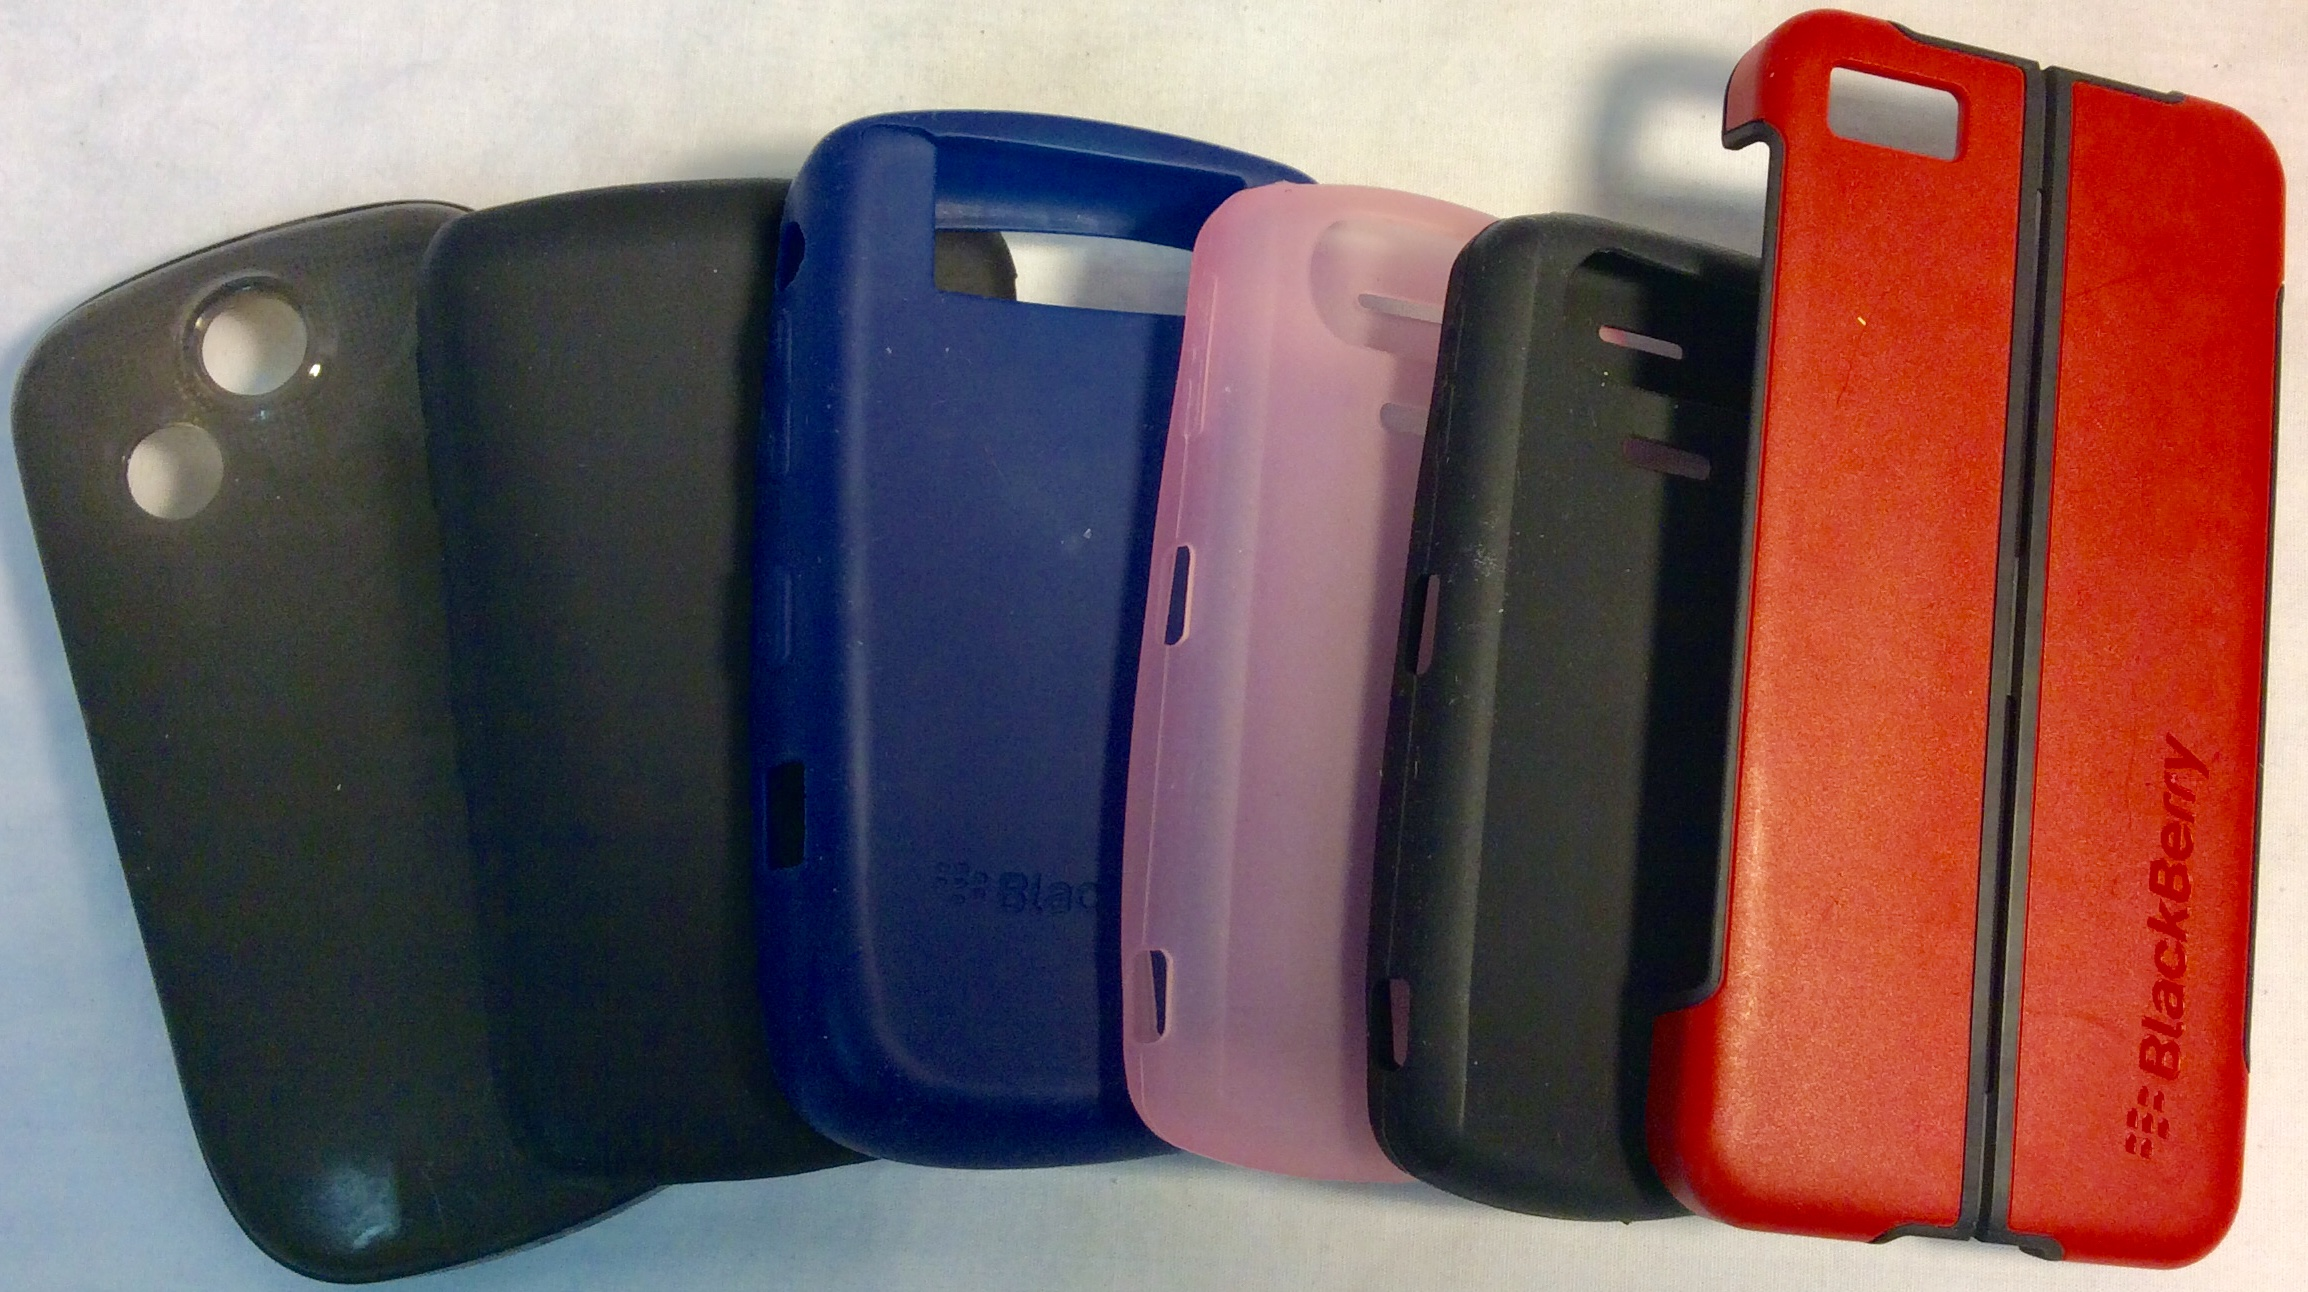 Assorted Blackberry phone cases